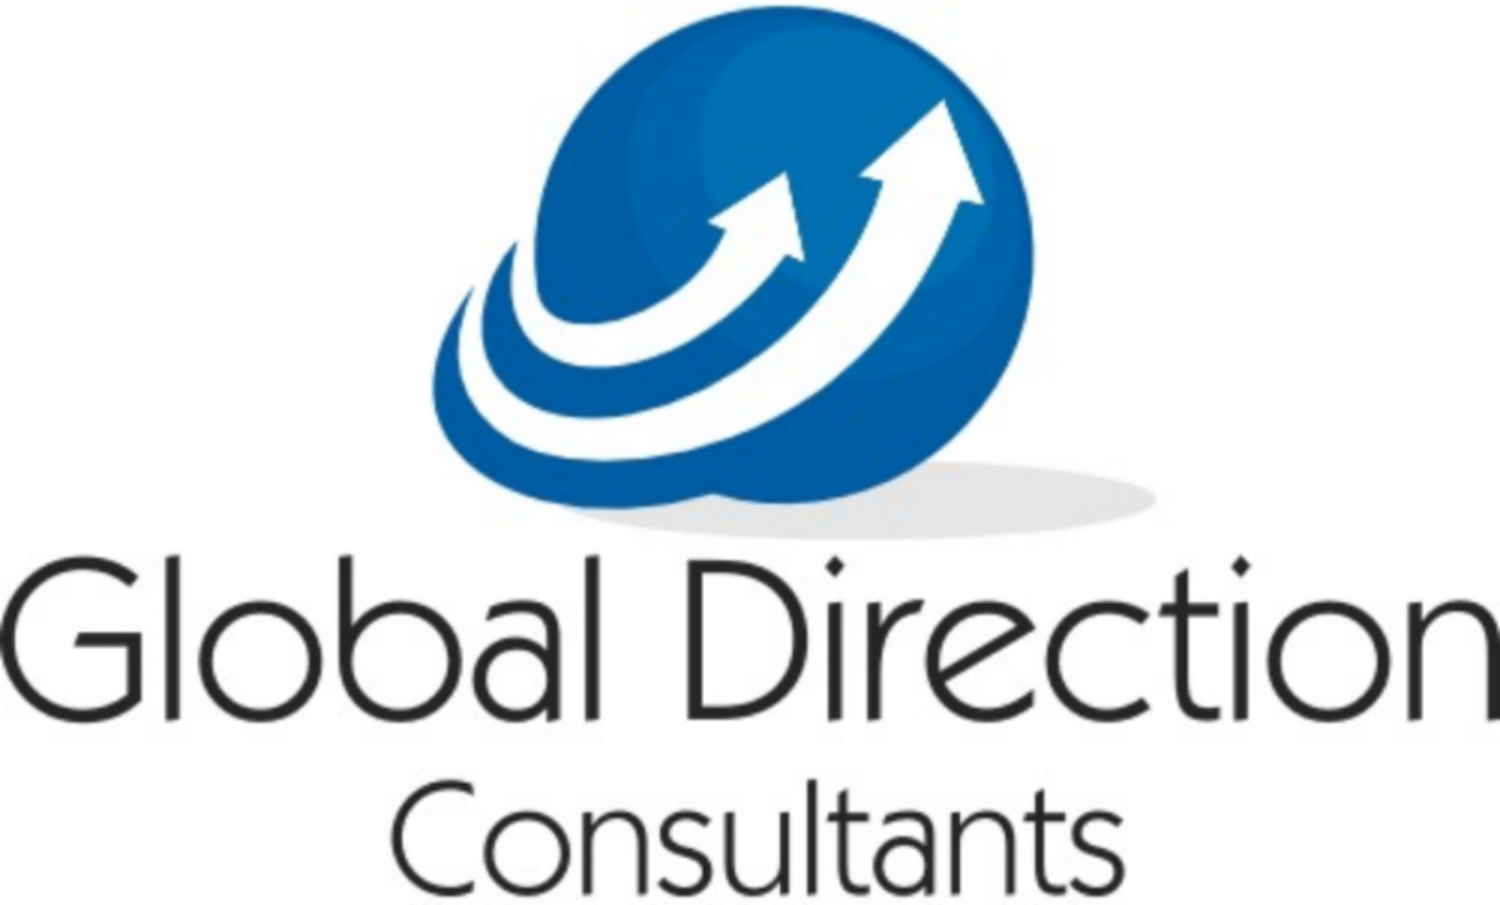 Global Direction Consultants, LLC